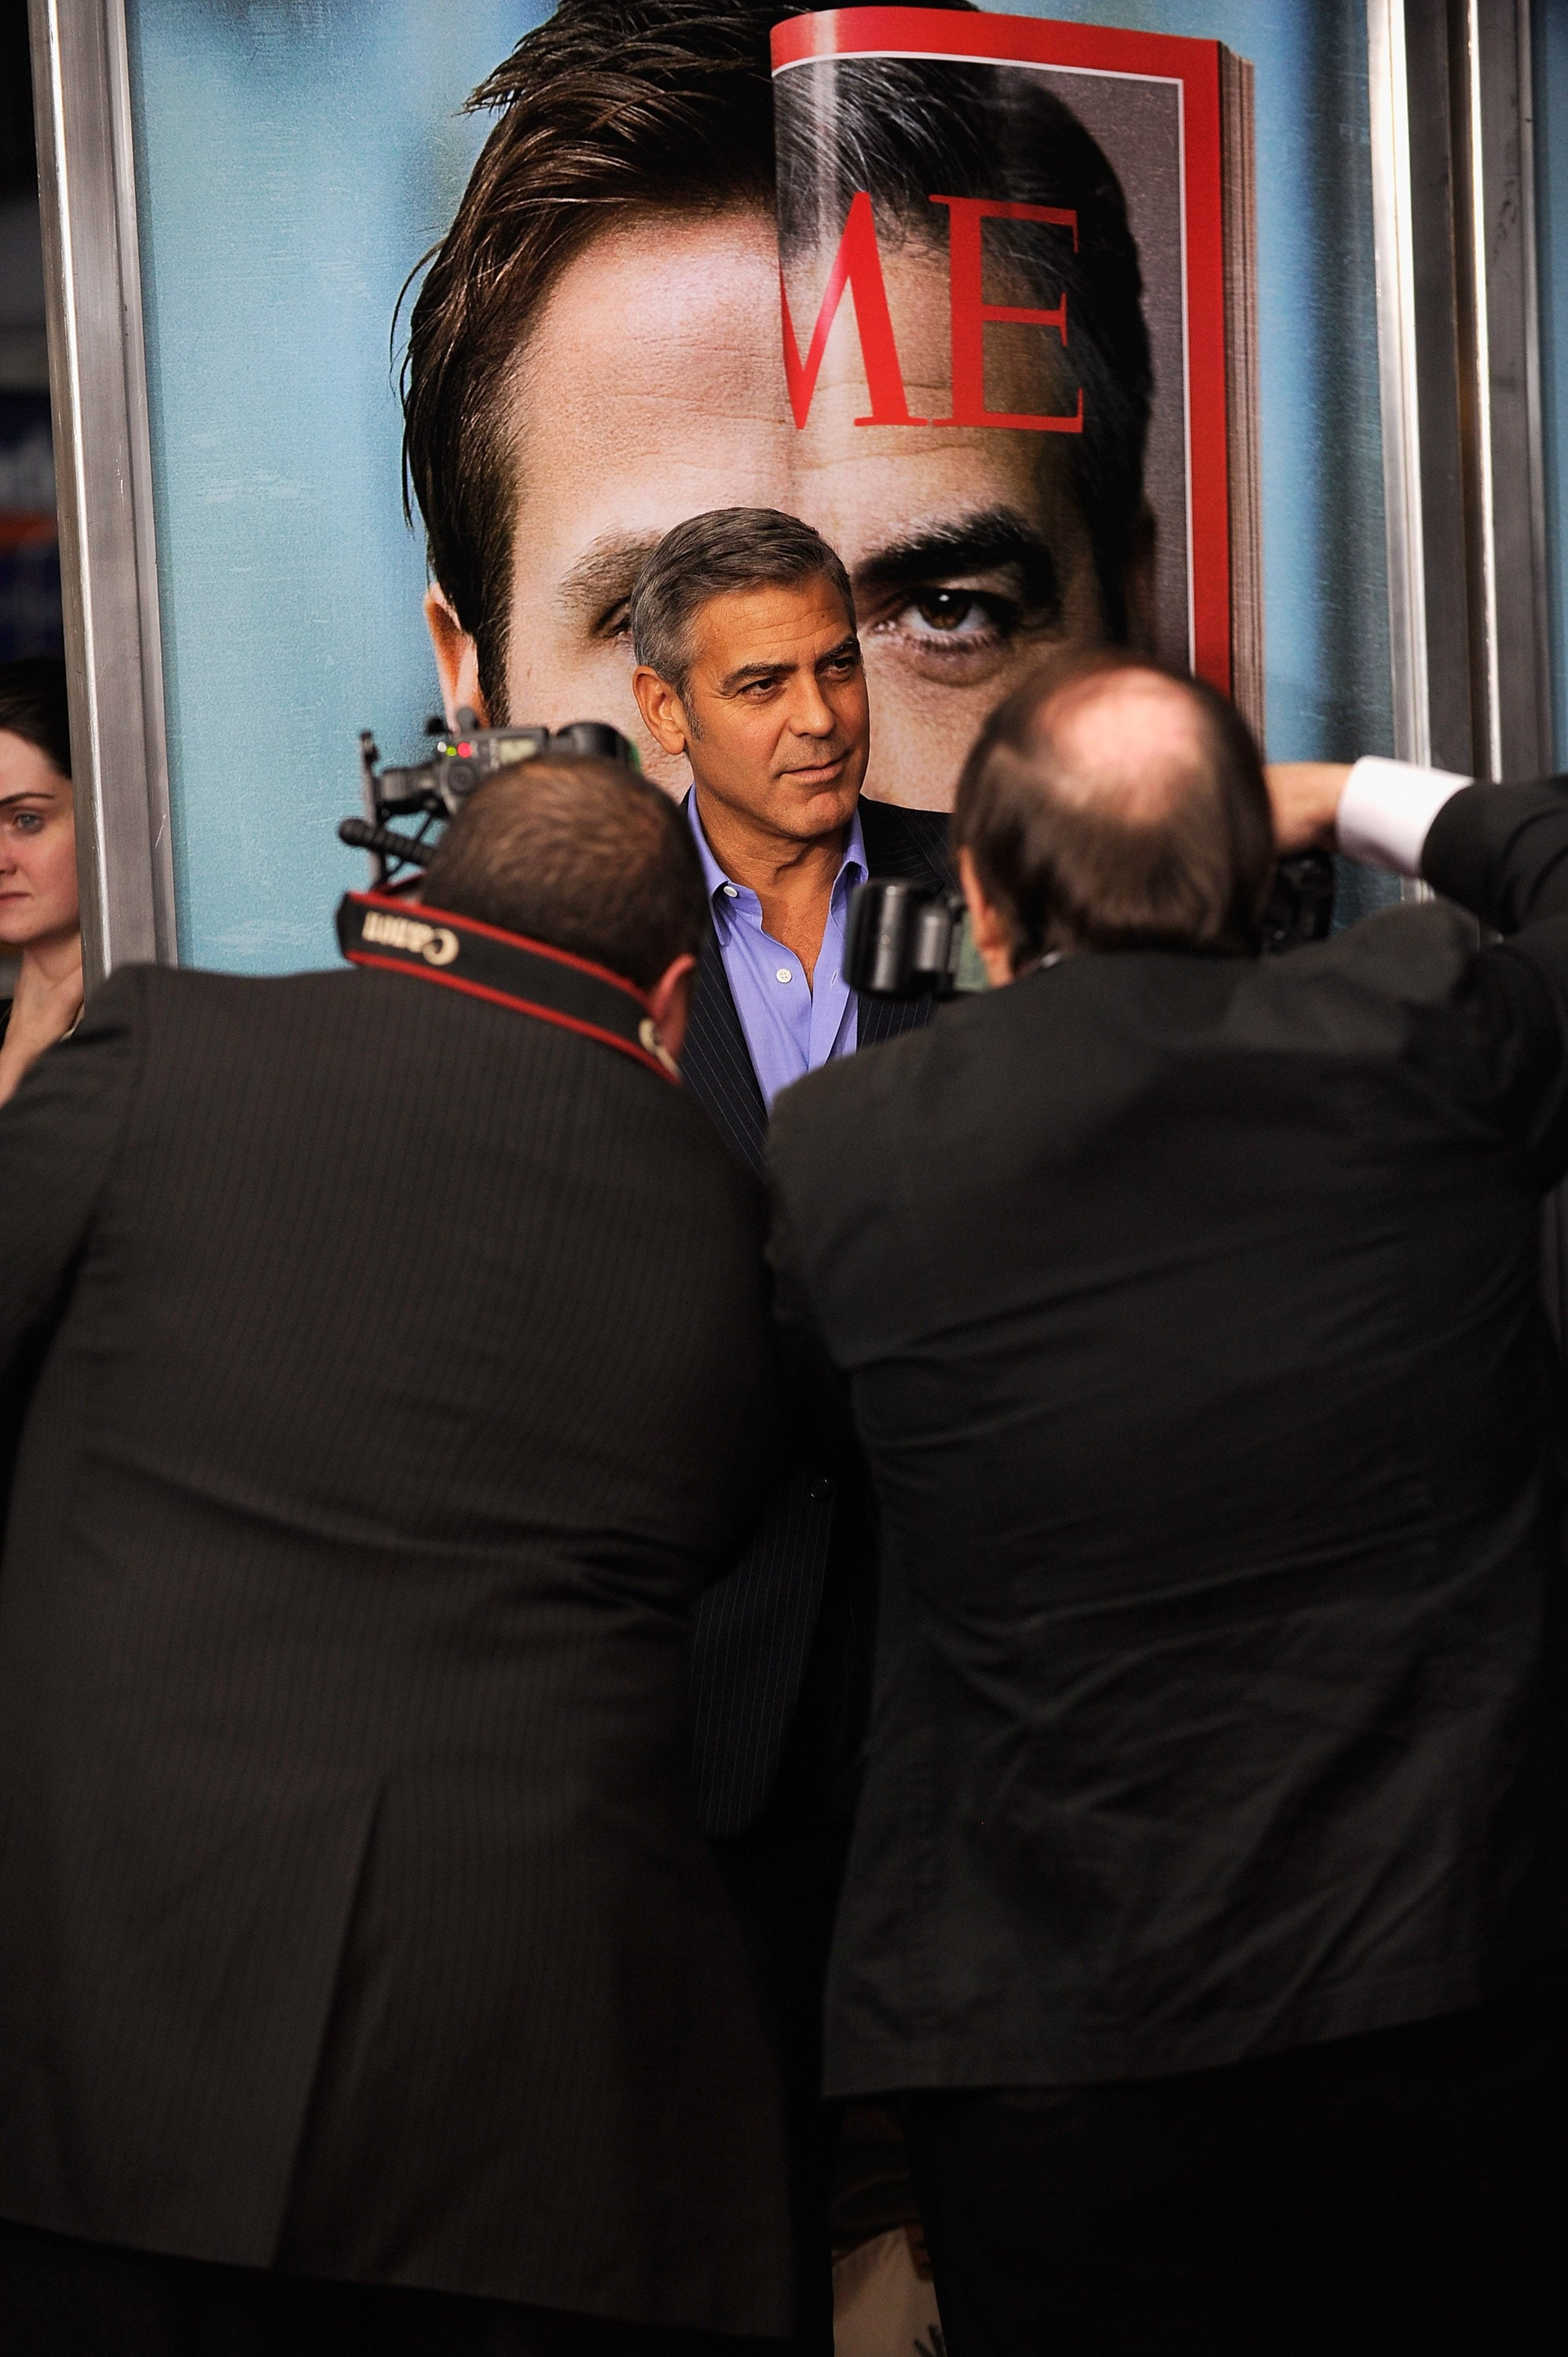 George Clooney walked the red carpet at the premiere of The Ides of March in NYC.